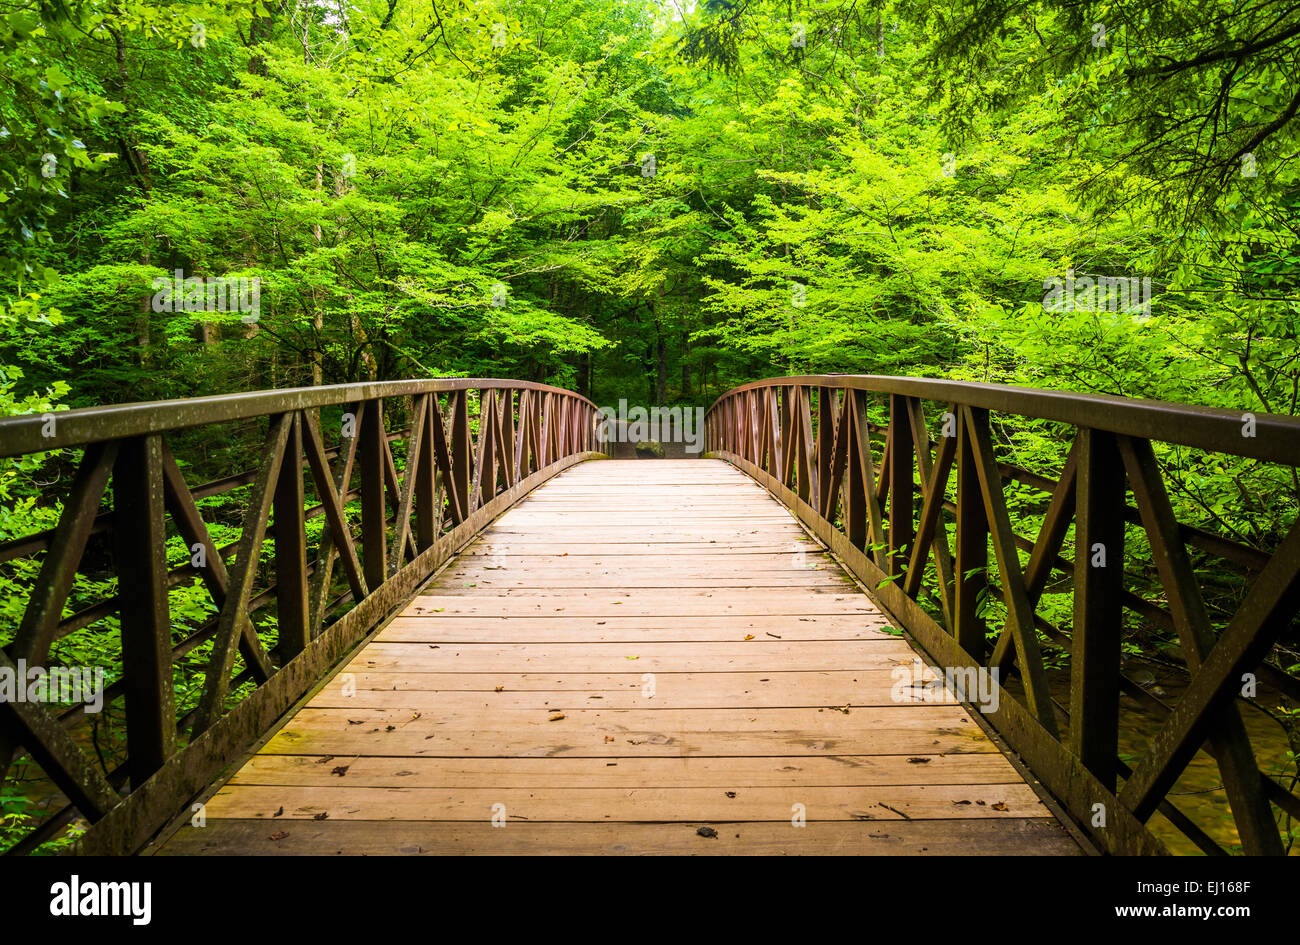 Walking bridge over a stream, at Great Smoky Mountains National Park, Tennessee. - Stock Image